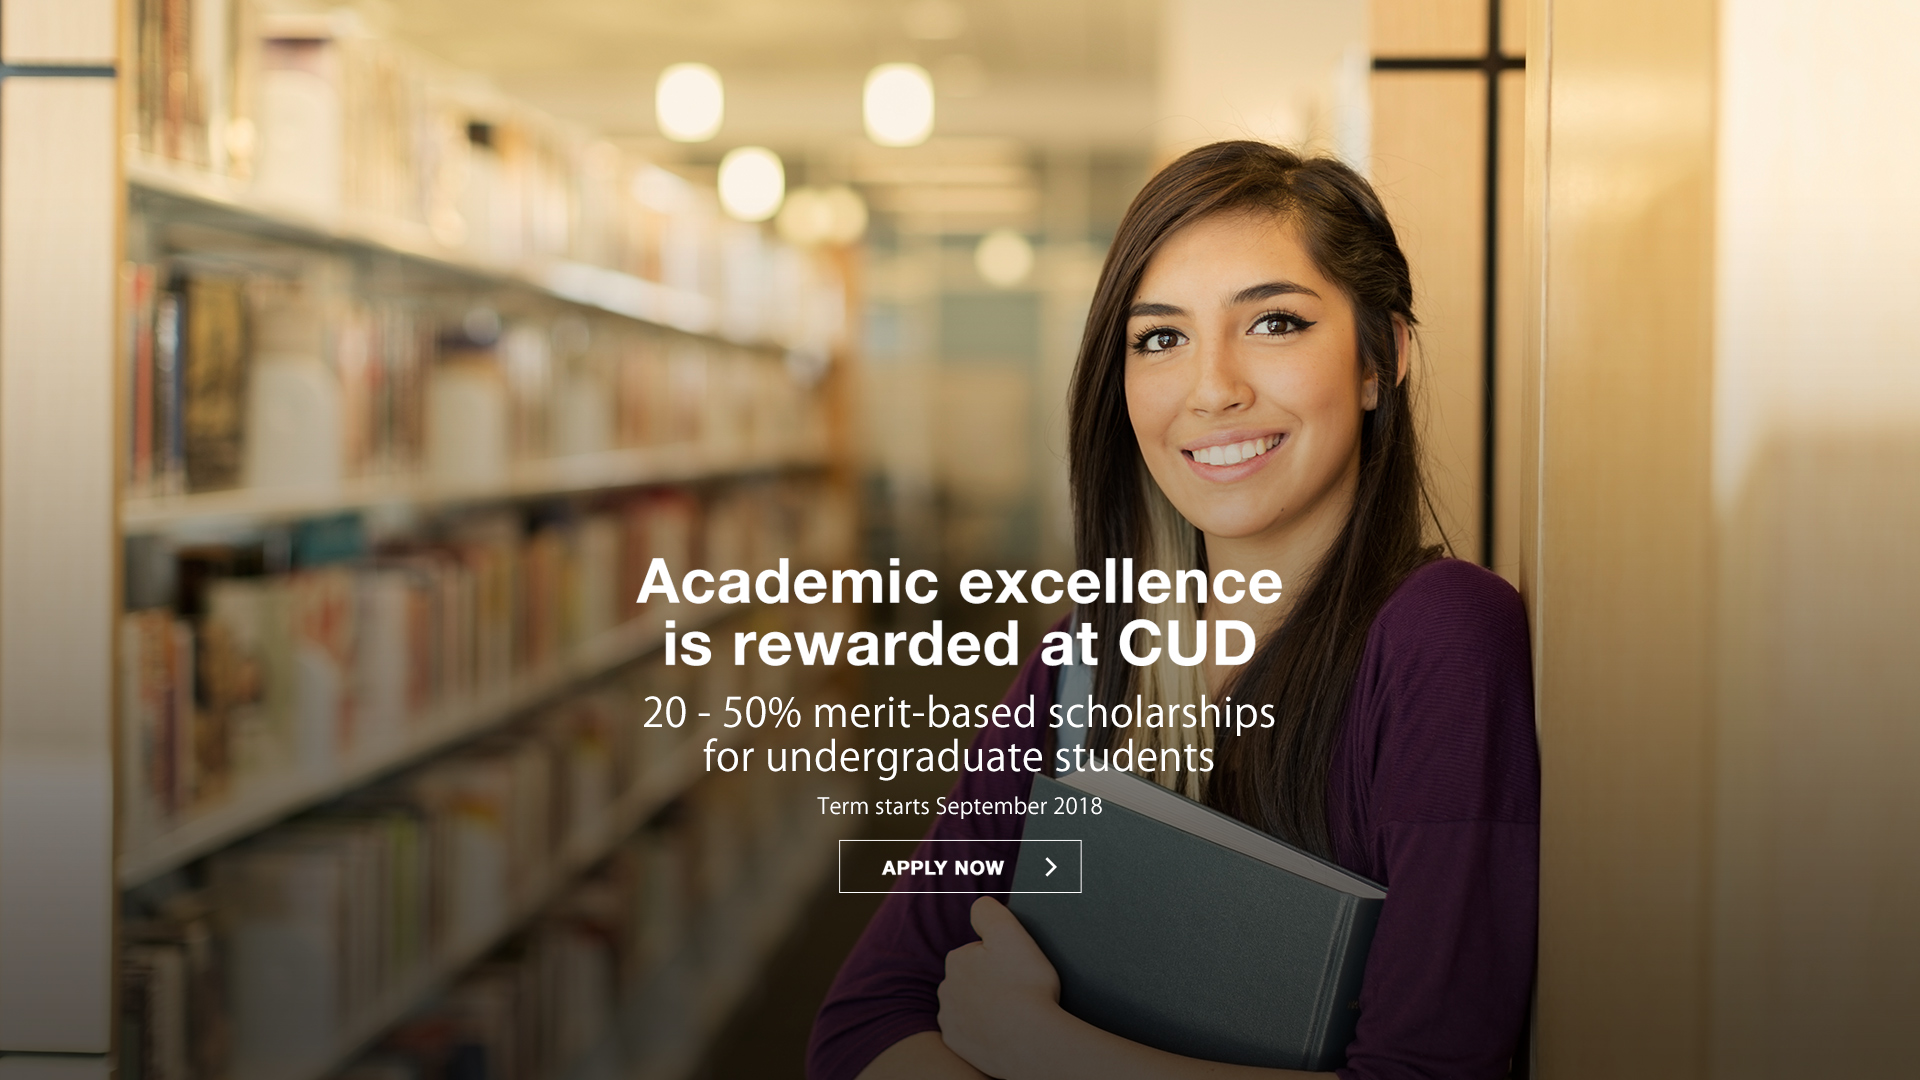 Scholarships - Academic Excellence